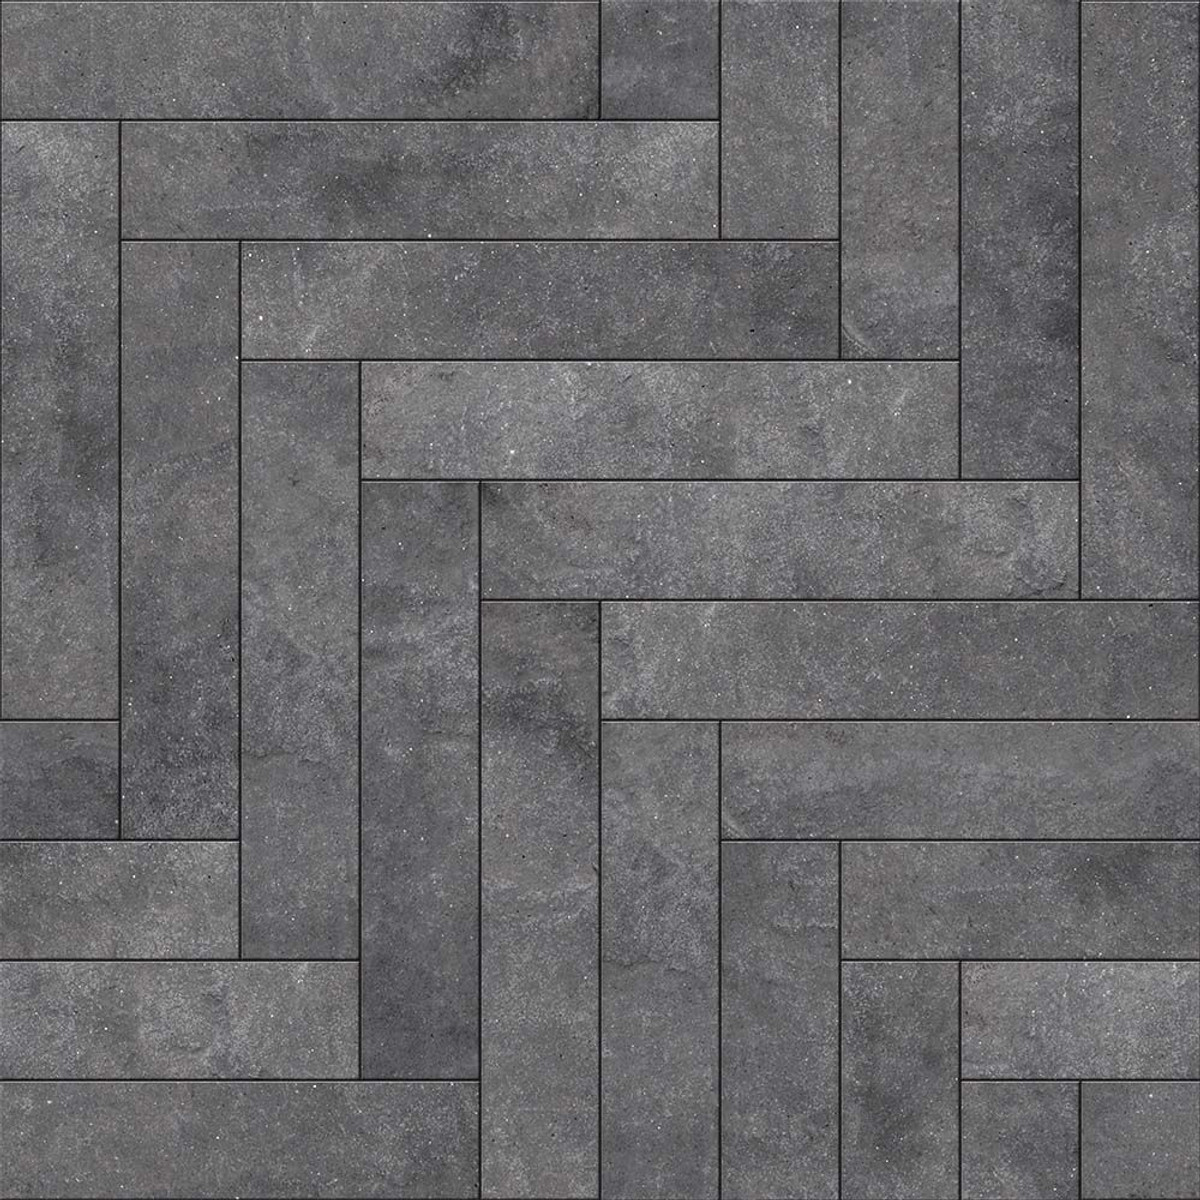 Perfection floor tile natural stone chevron blackstone 20 x 20 x perfection floor tile flexible interlocking tile in chevron blackstone dailygadgetfo Image collections